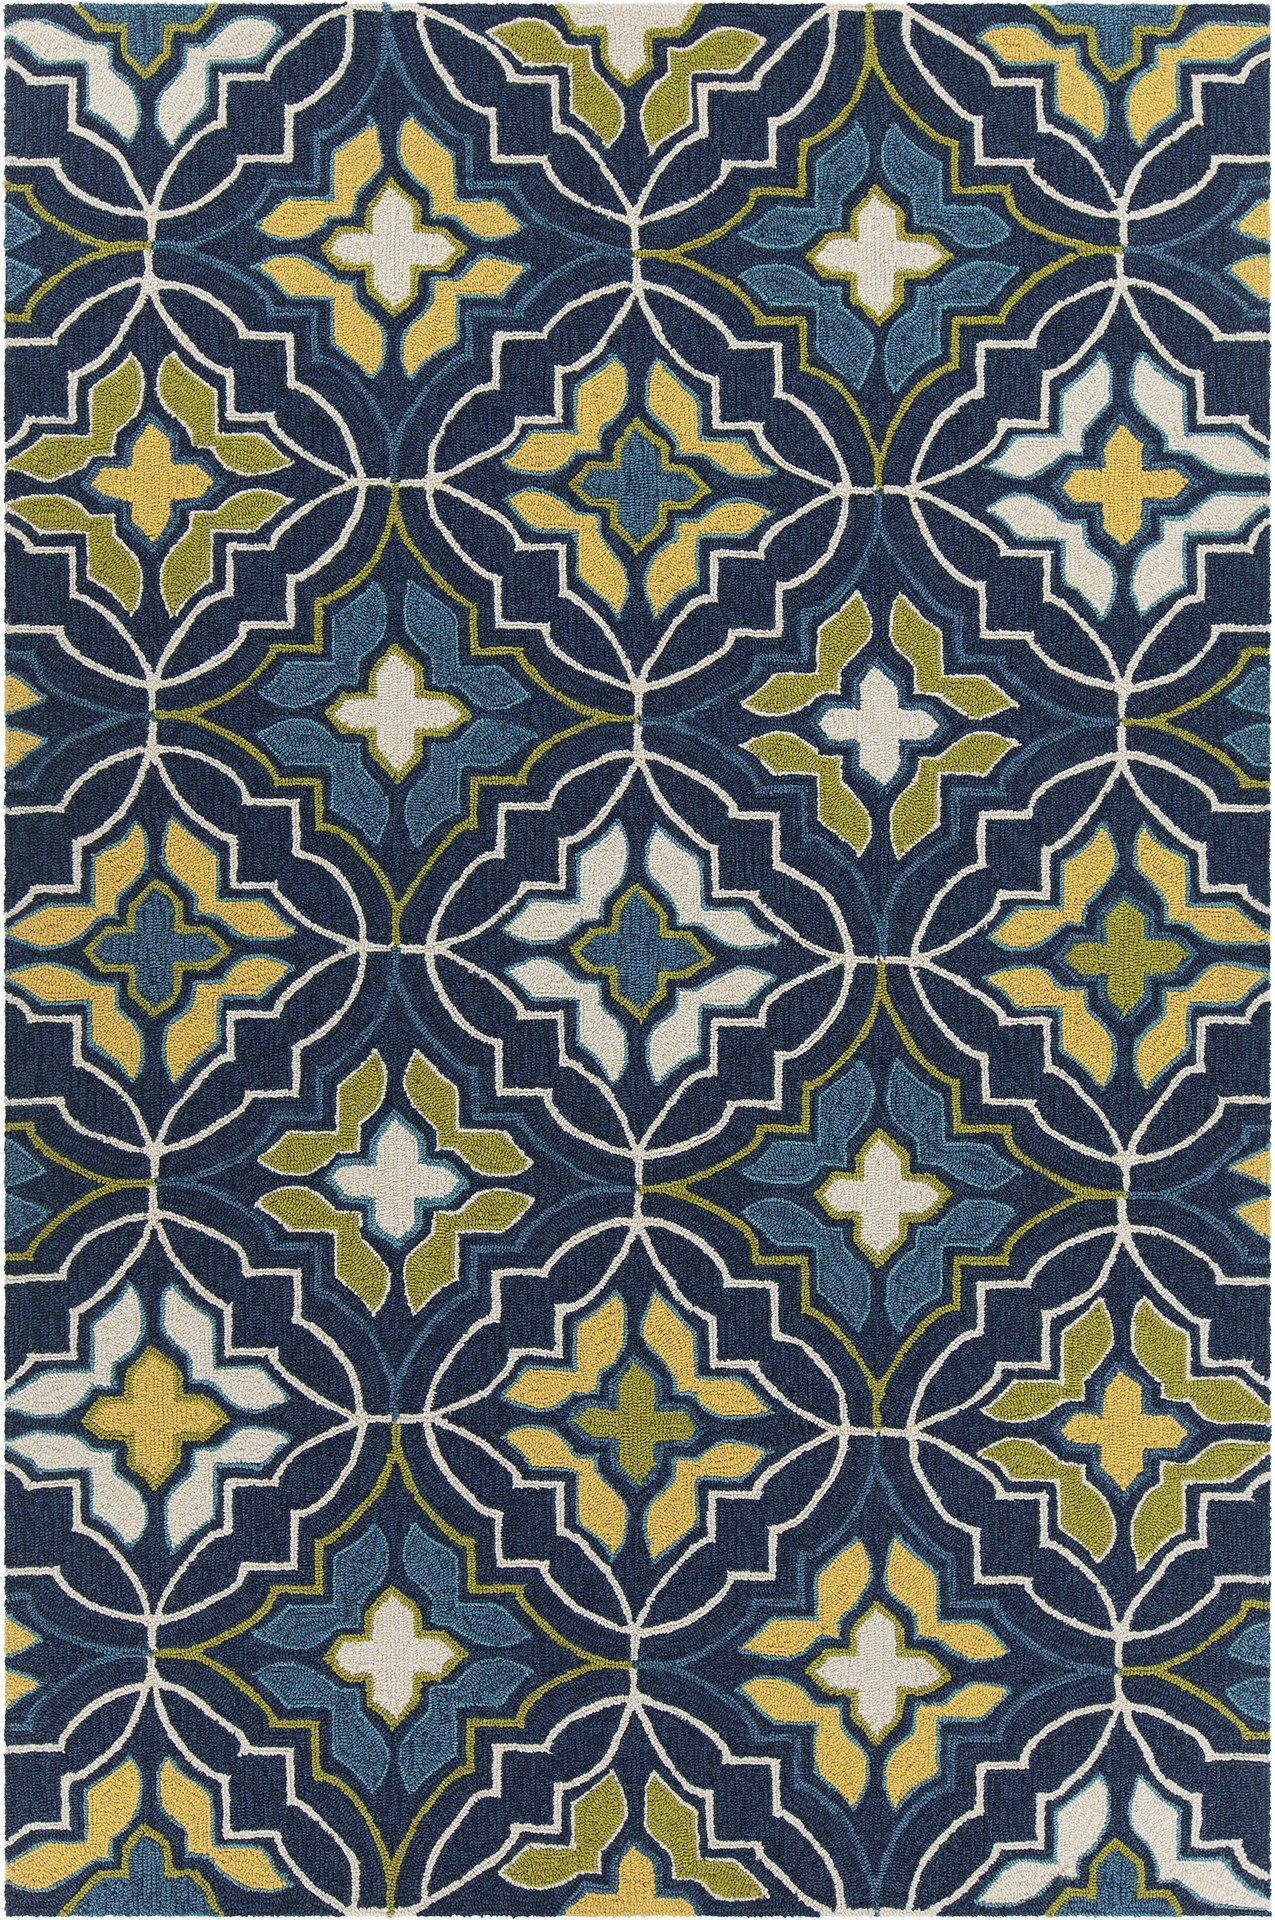 Terra Collection Hand Tufted Area Rug In Blue Green Yellow Cream Design By Chandra Rugs